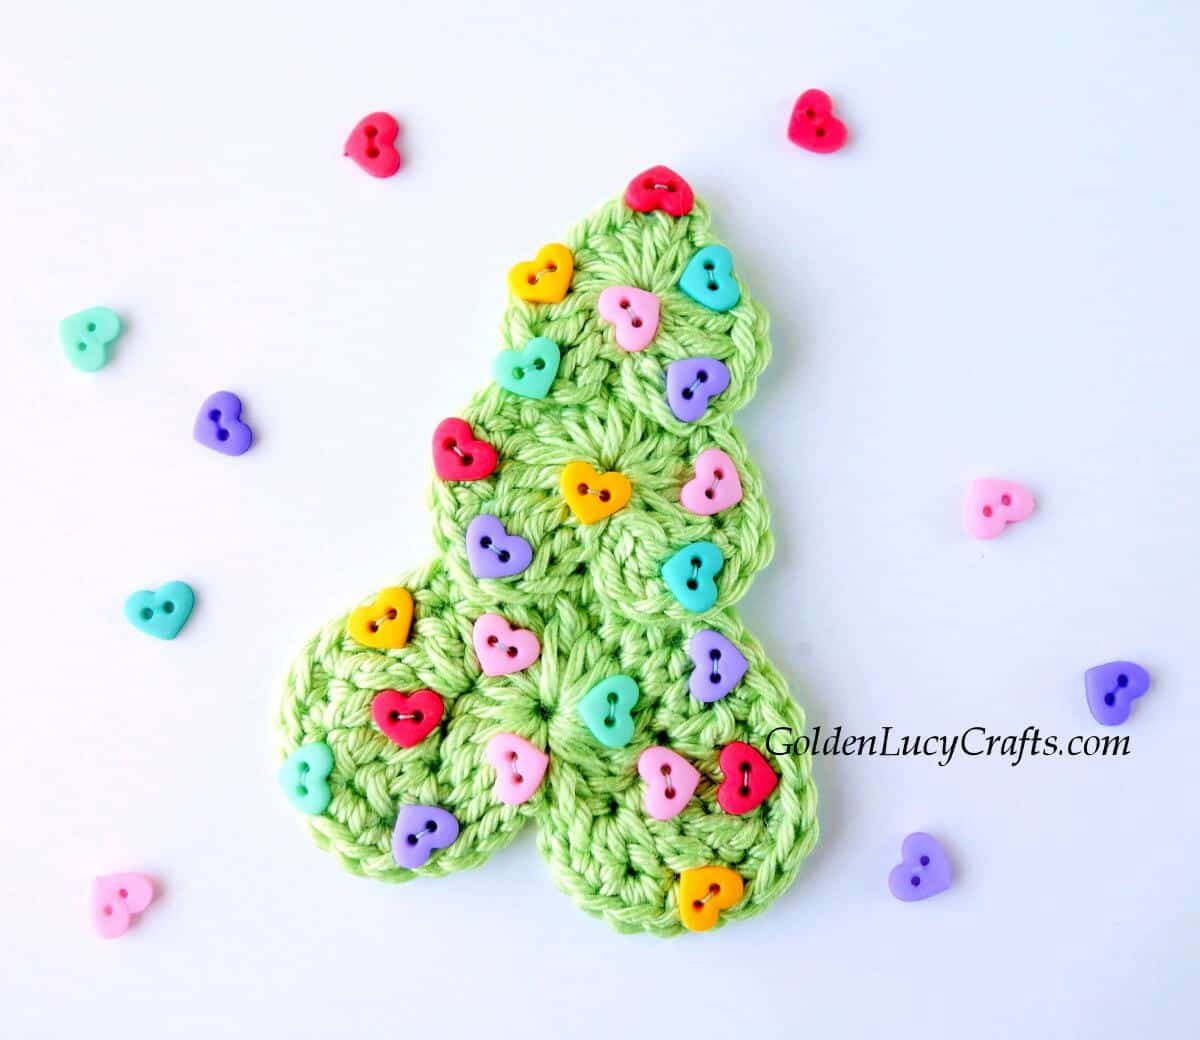 Green crocheted Christmas tree embellished with tiny heart-shaped buttons.